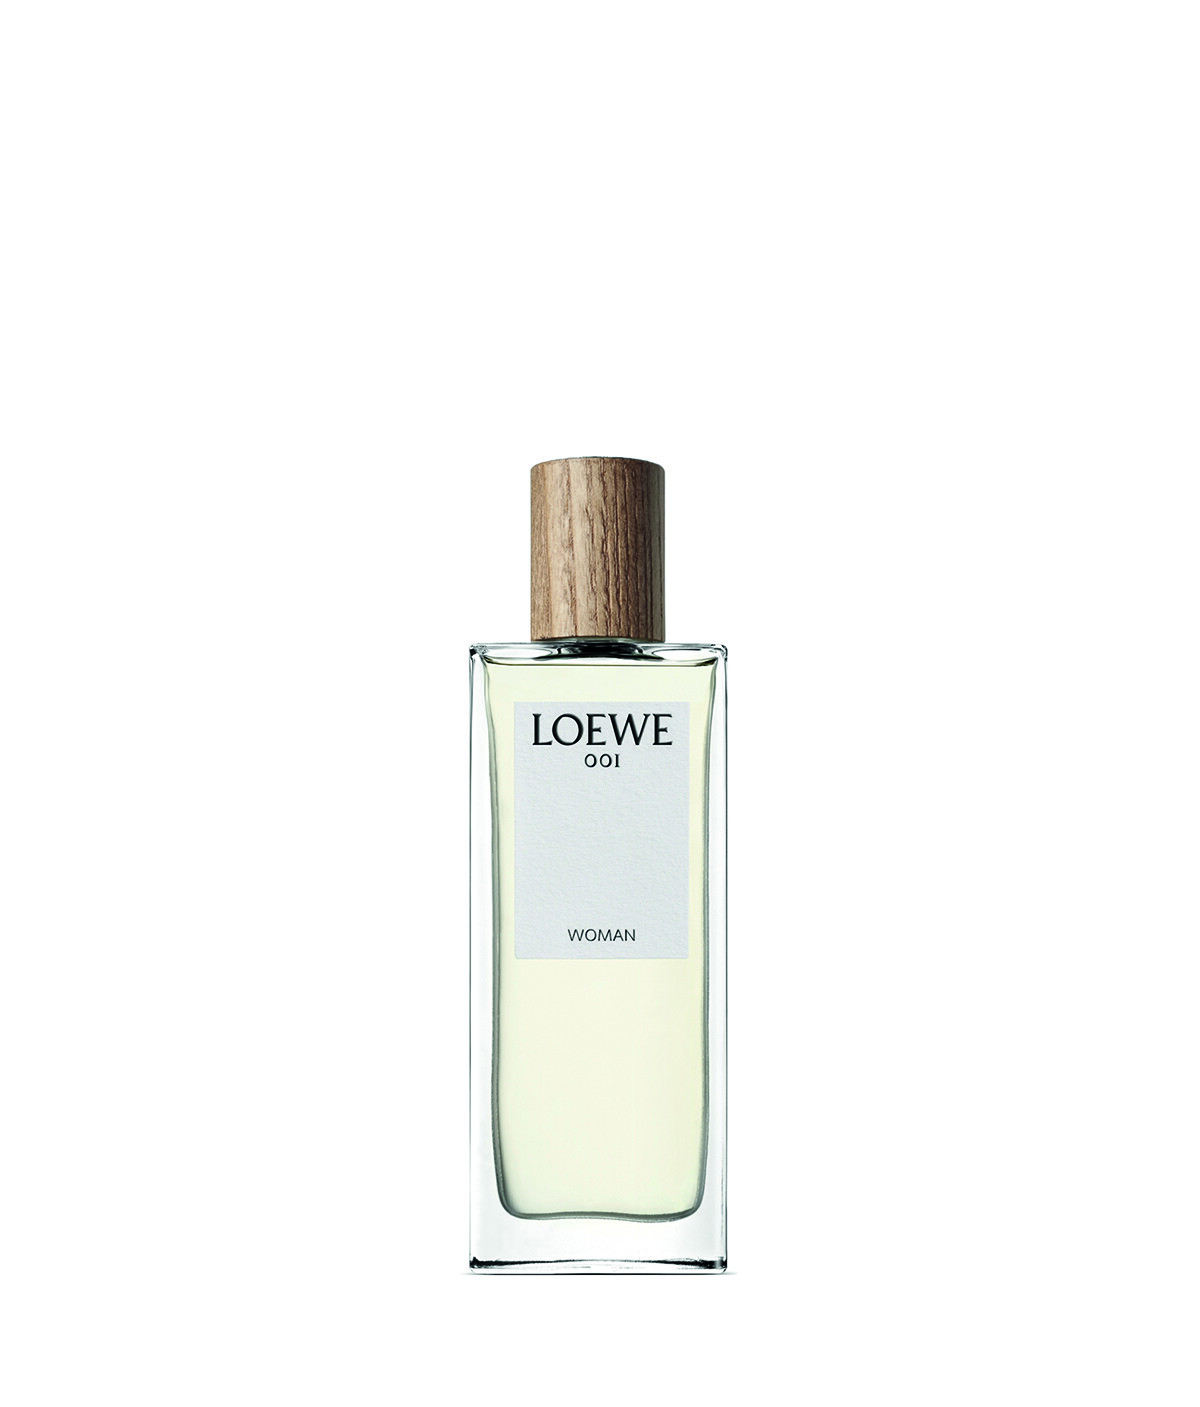 LOEWE Loewe 001 Woman Edp 50Ml Sin Color front